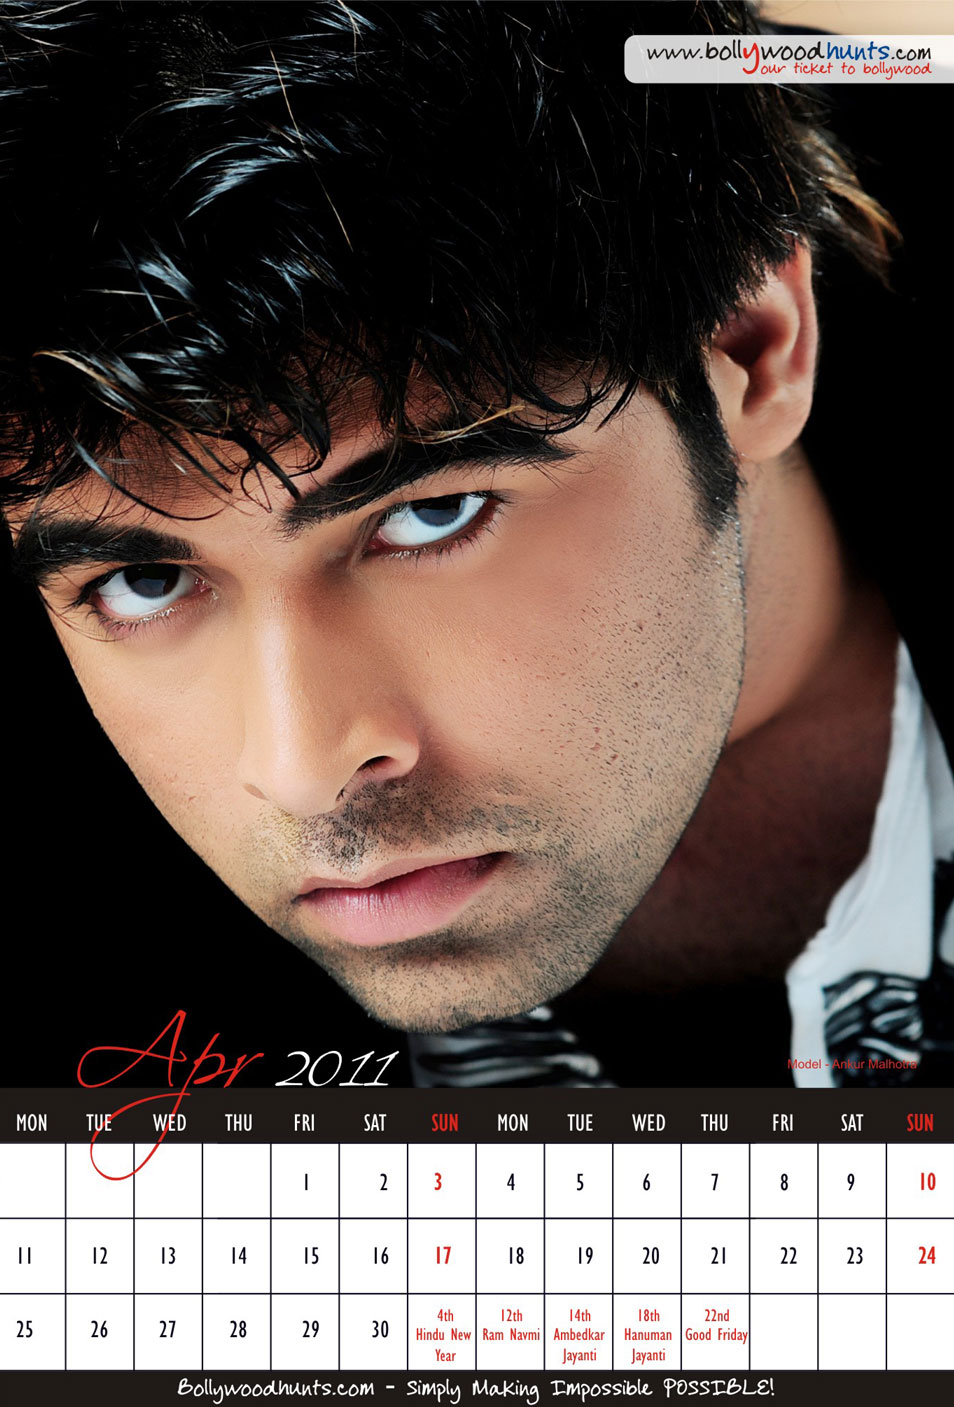 Bollywood Models Wall Calendar : Apr 2011